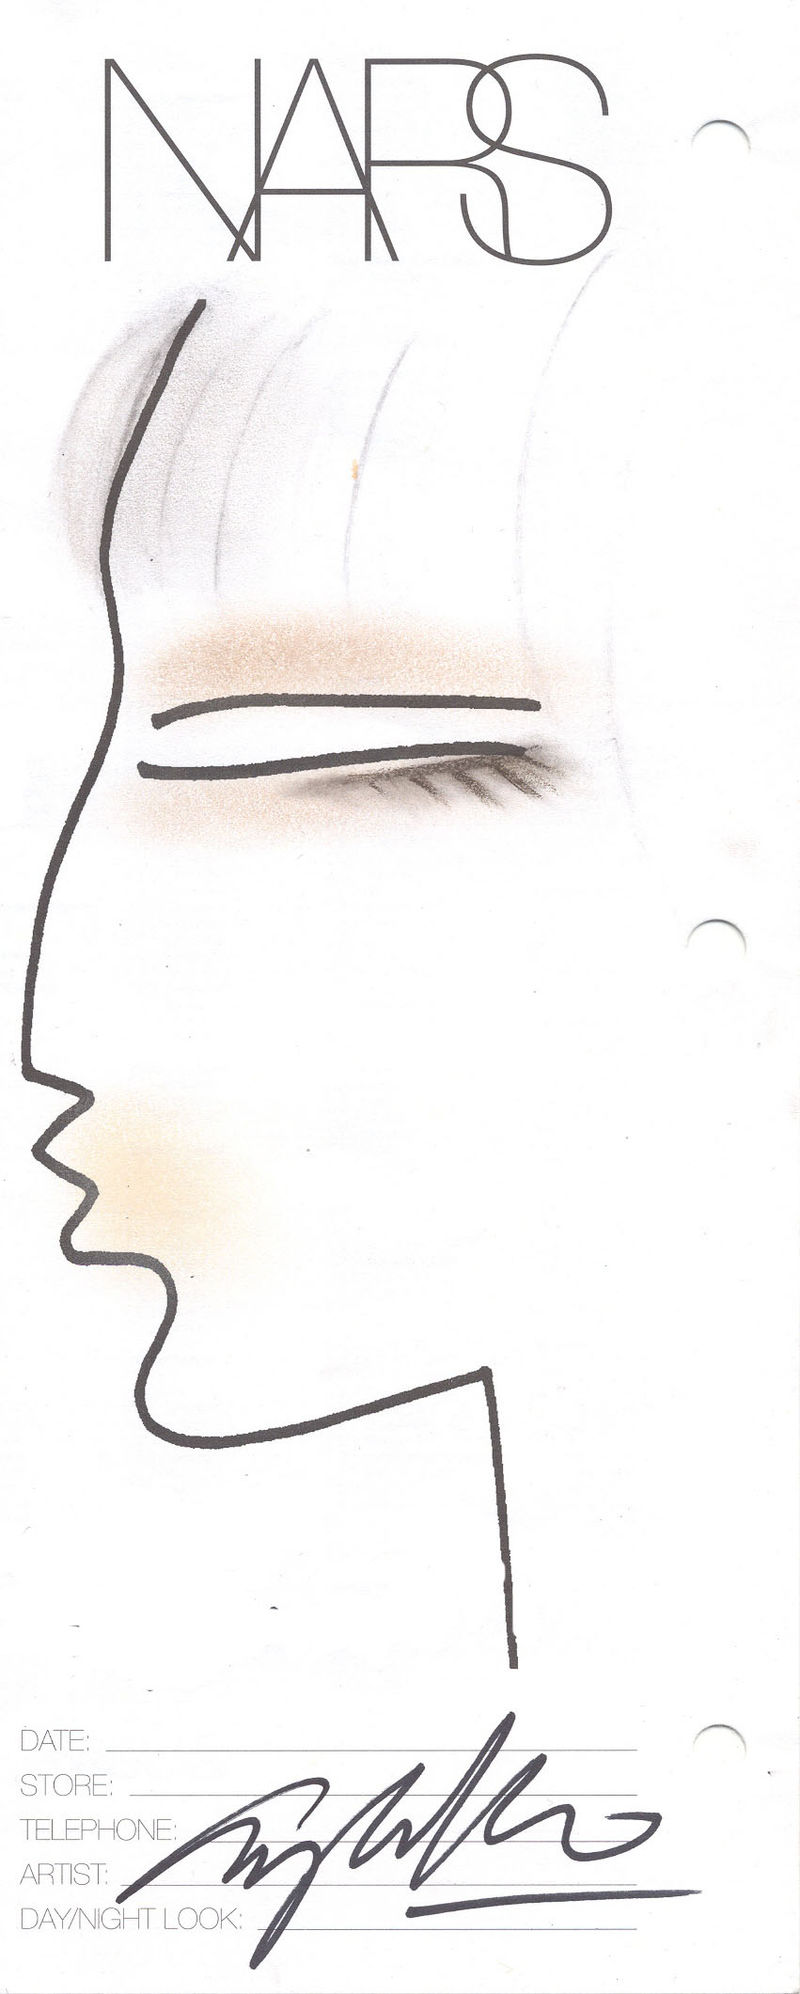 NARS Phillip Lim face chart